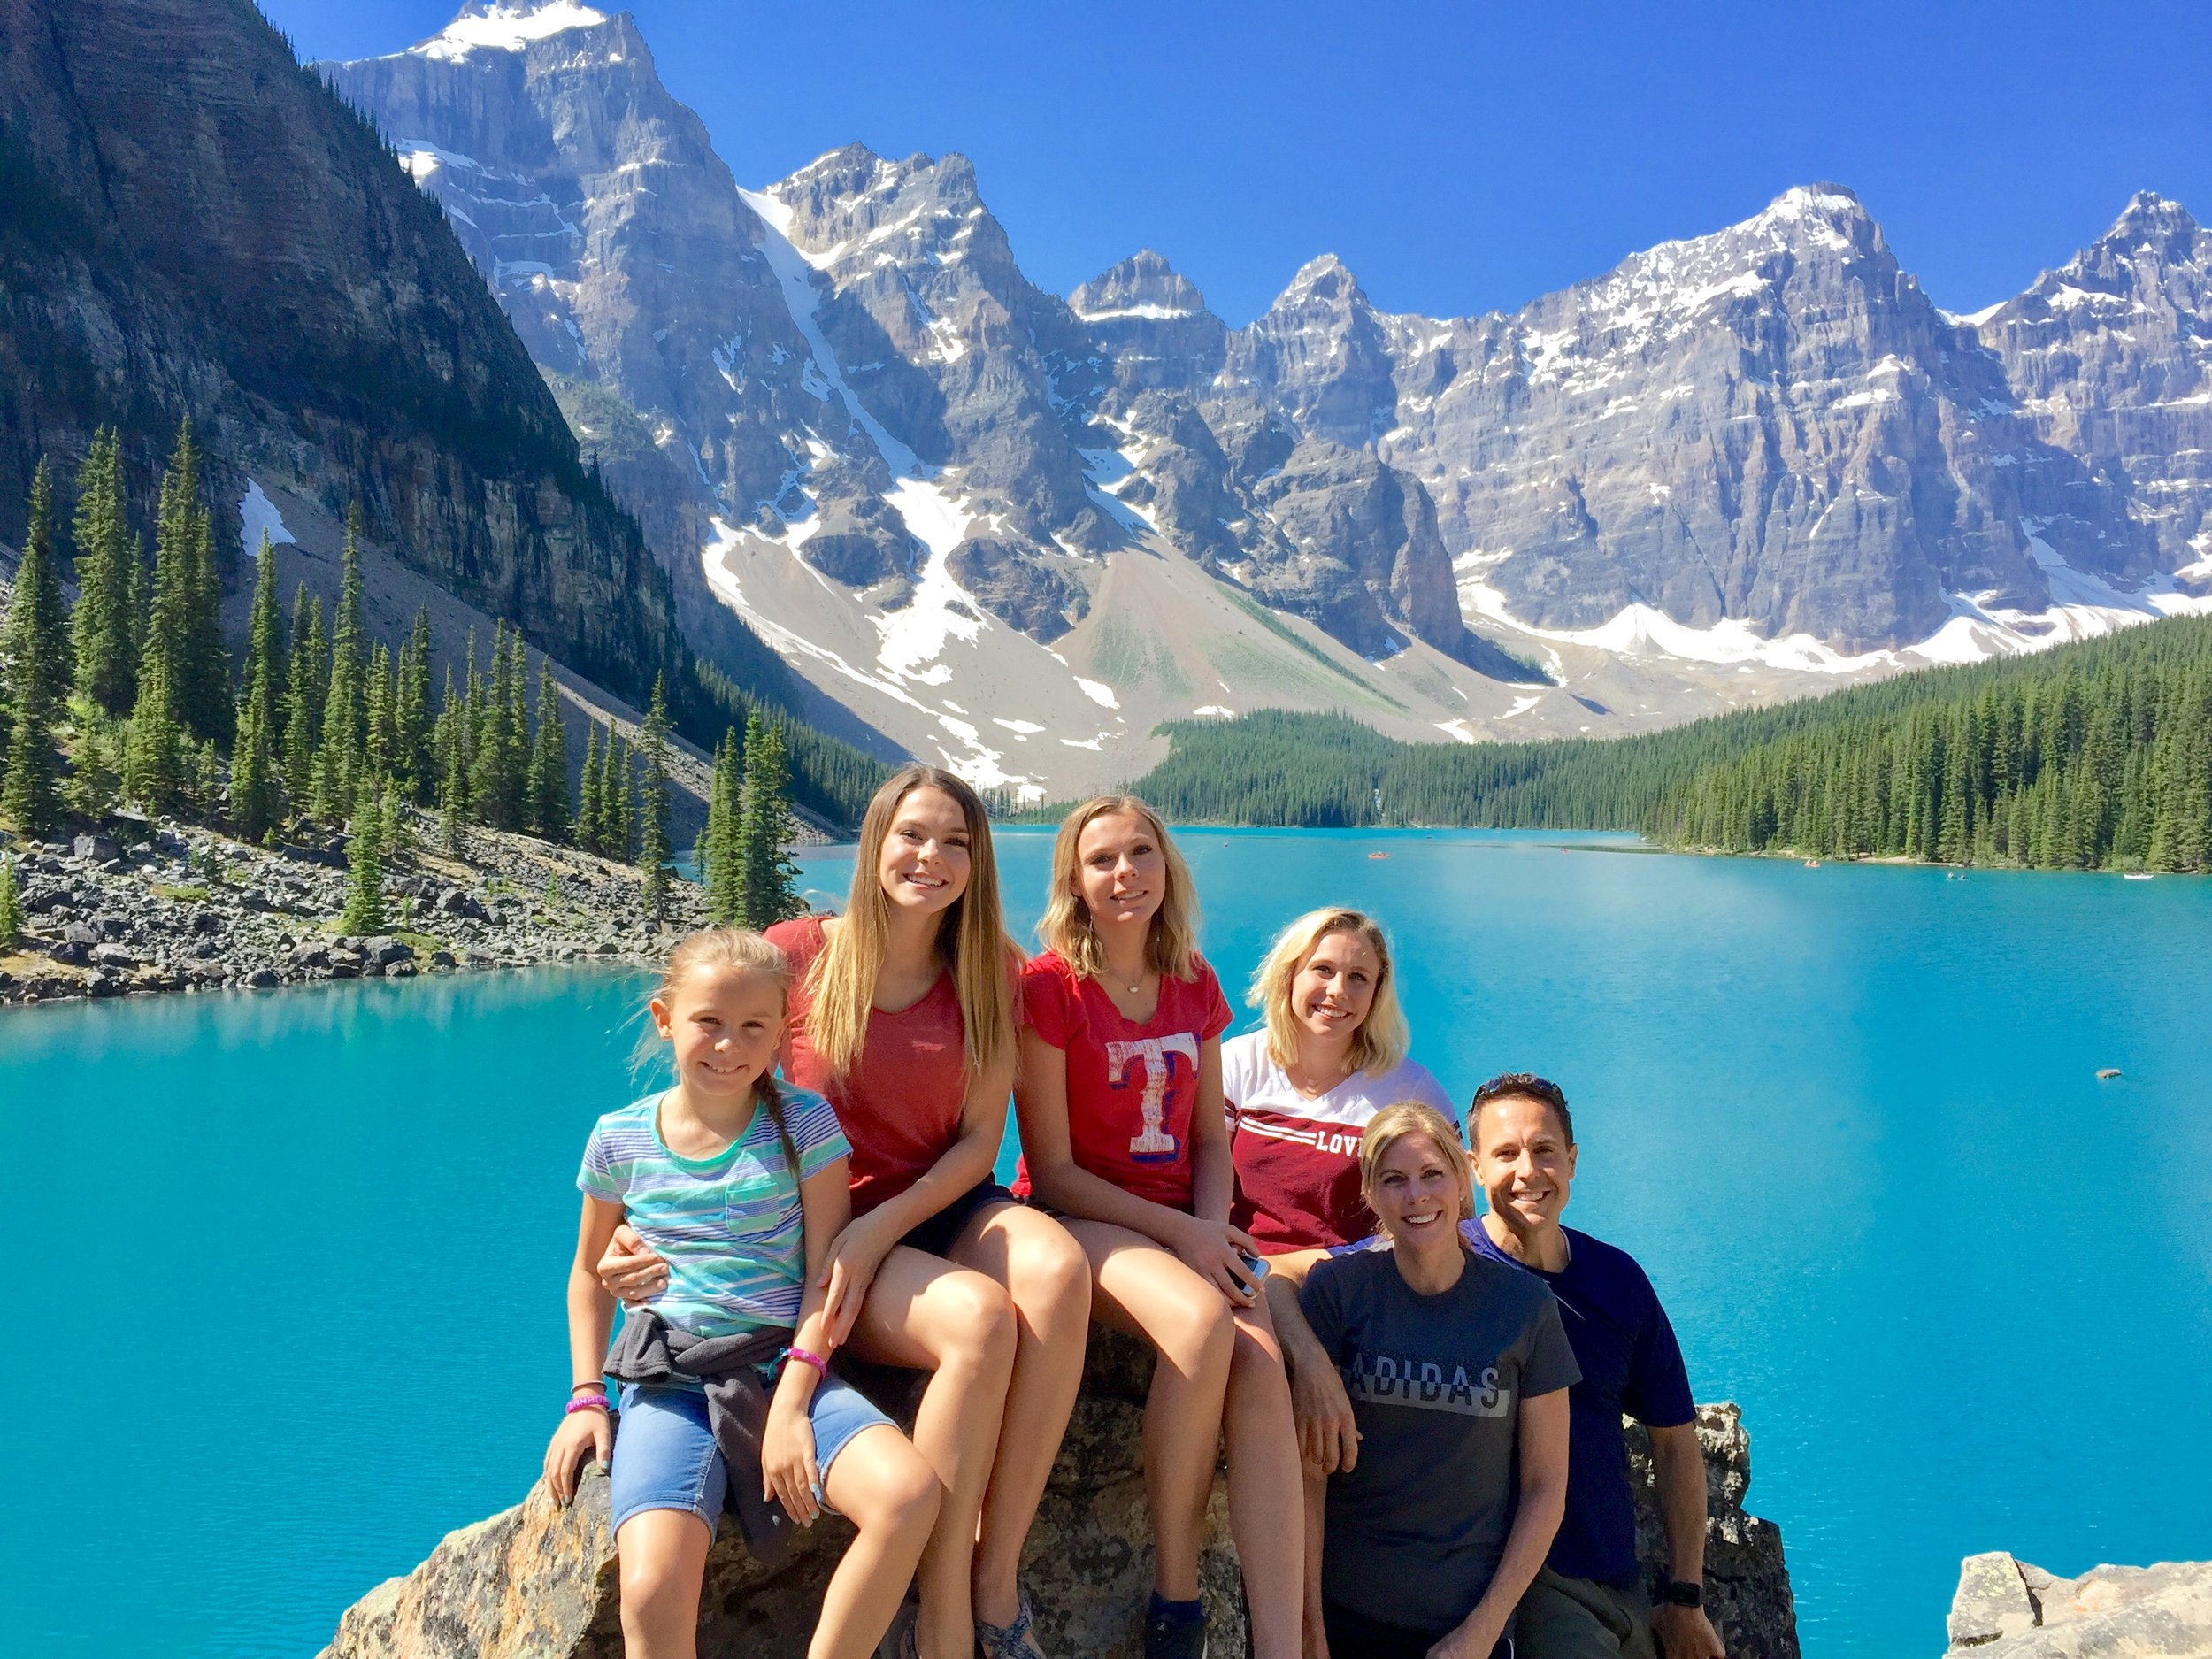 The Brooks family has lived in Fairview for four years. (from left) 'Sophie, Eleise, Colette, Noelle, Staci and Dain Brooks (Photo taken at Banff National Park, Canada).